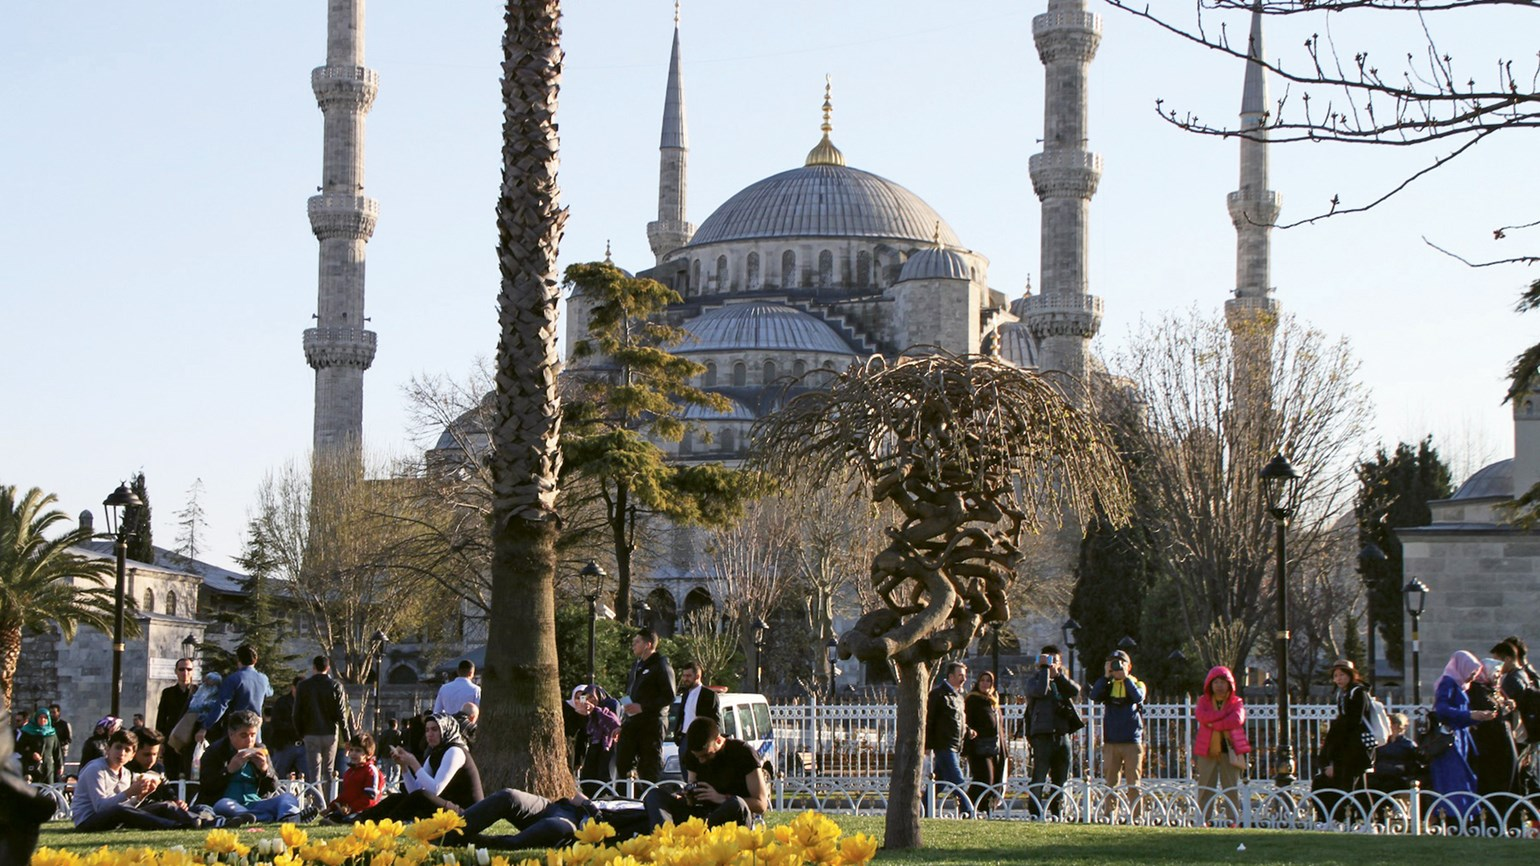 Turkey faces tourism challenges after attacks